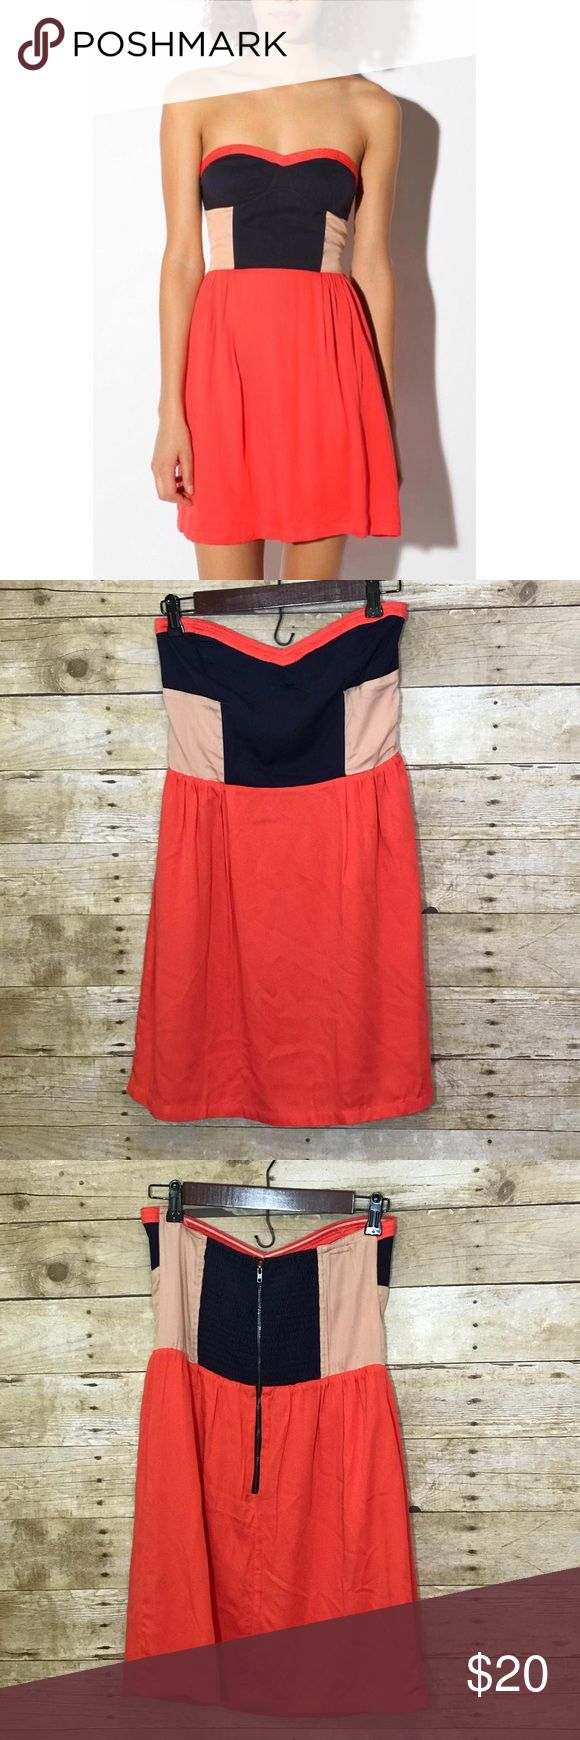 """UO Sparkle & Fade Strapless Dress Color Block Red Really cute Urban Outfitters dress. Has a nice color blocking with a bright coral red, navy blue and nude. Zips up the back. Good condition. One of the inside hanging straps has been cut off.   Measurements: Armpit-Armpit: 14.5"""" Waist (flat across): 13.5"""" Length (Shoulder-Bottom Hem): 27""""   Please ask if you have any questions and see other listings! Urban Outfitters Dresses Mini"""